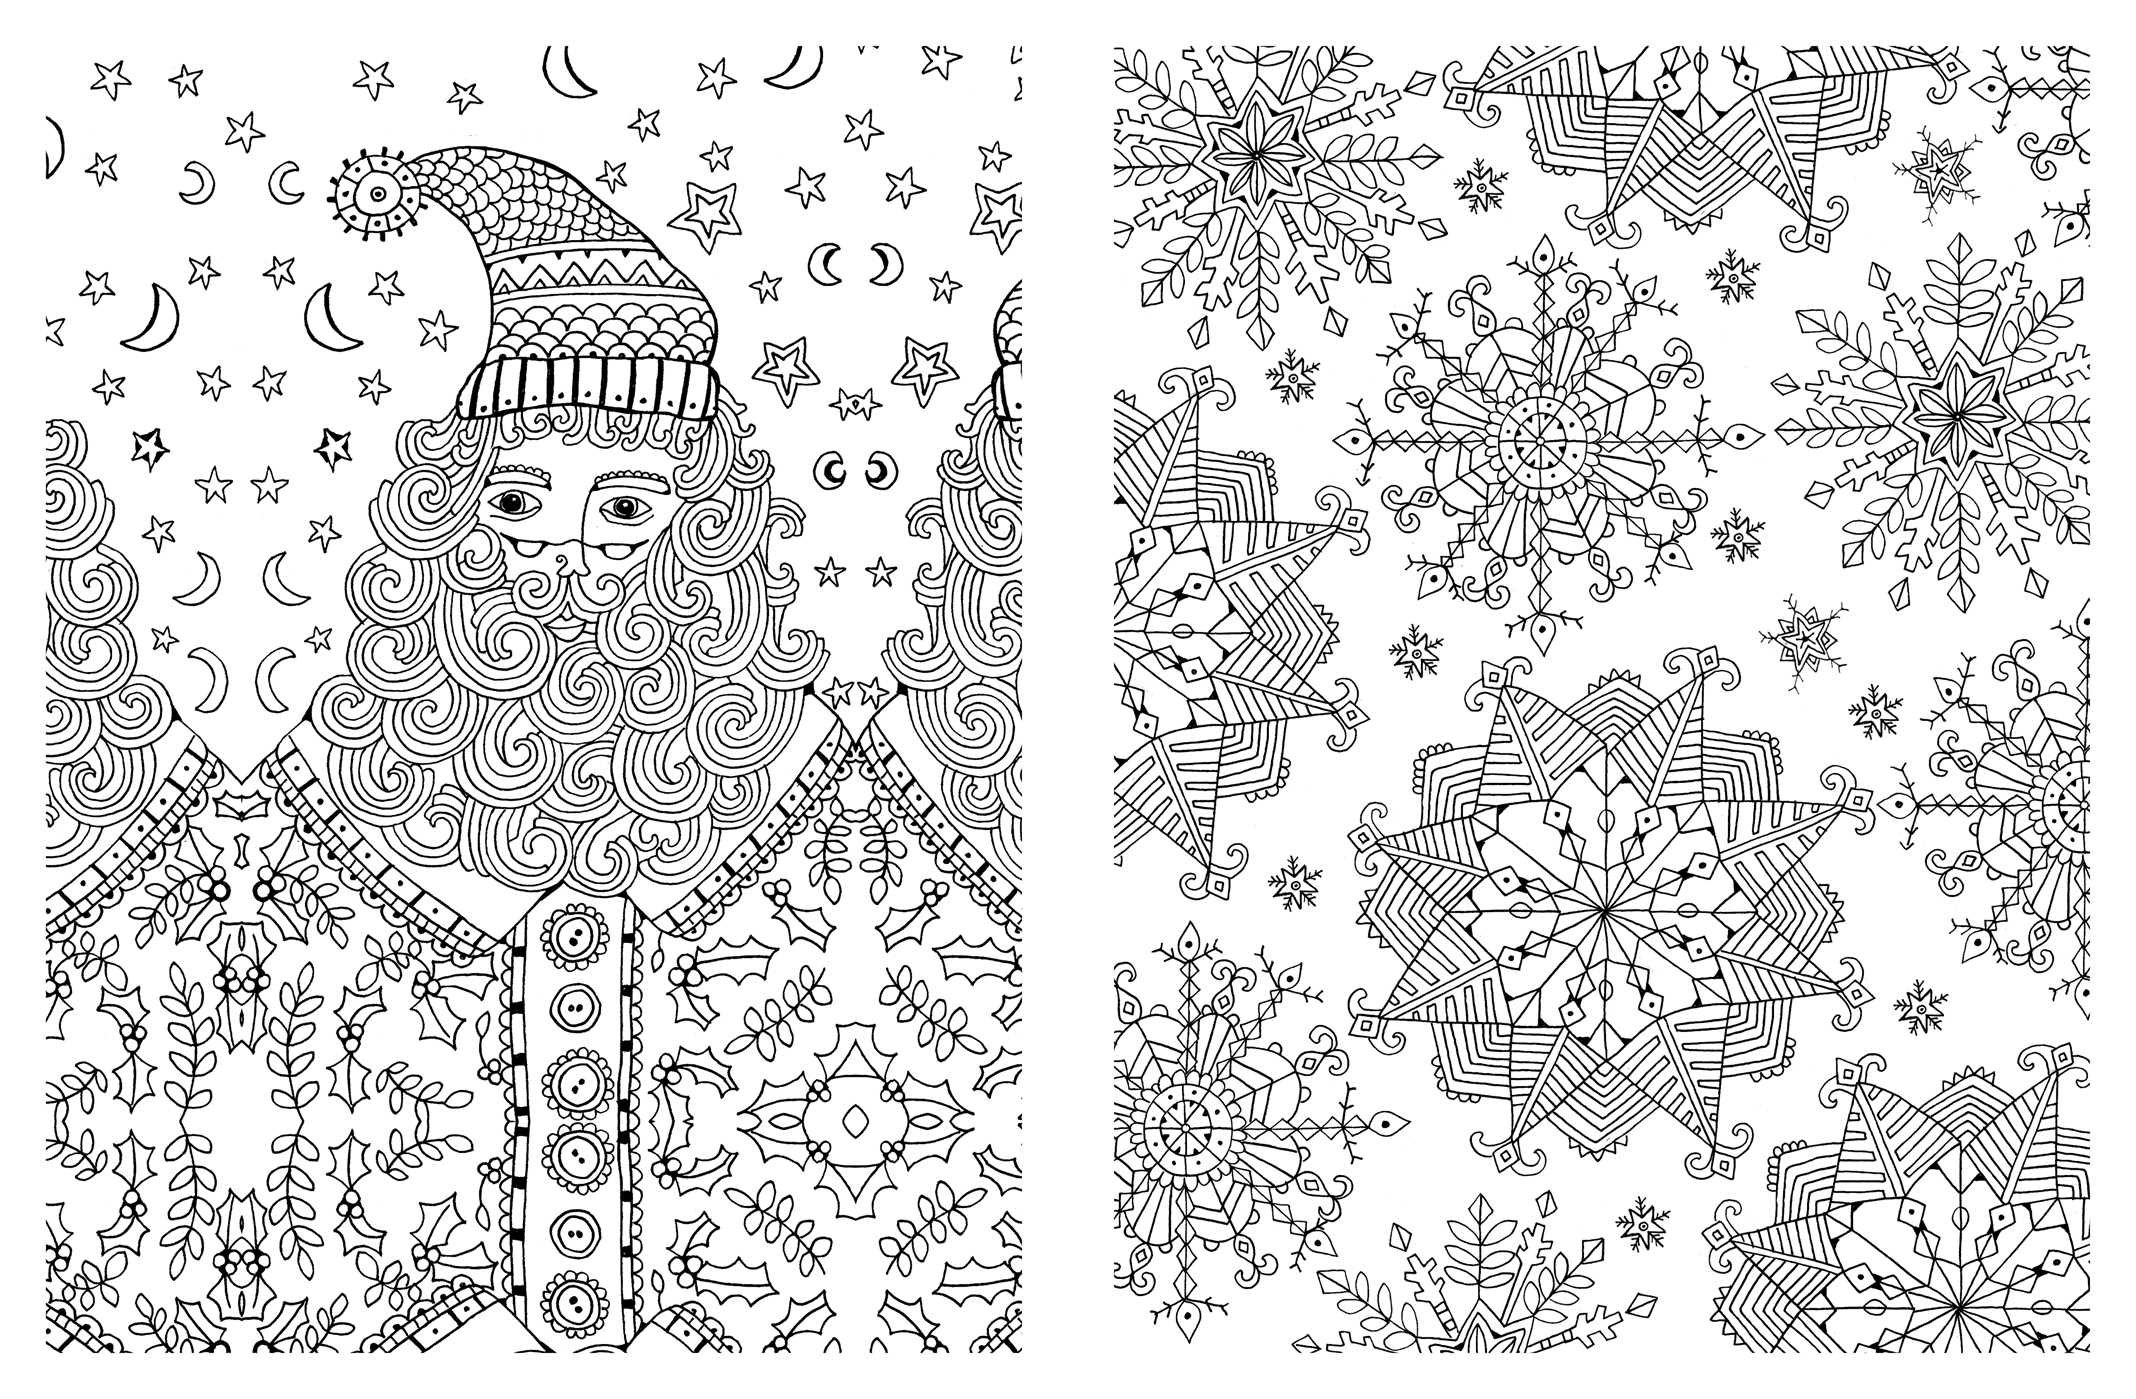 Coloring pages relaxing - Amazon Com Posh Adult Coloring Book Christmas Designs For Fun Relaxation Posh Coloring Books 9781449461089 Andrews Mcmeel Publishing Books